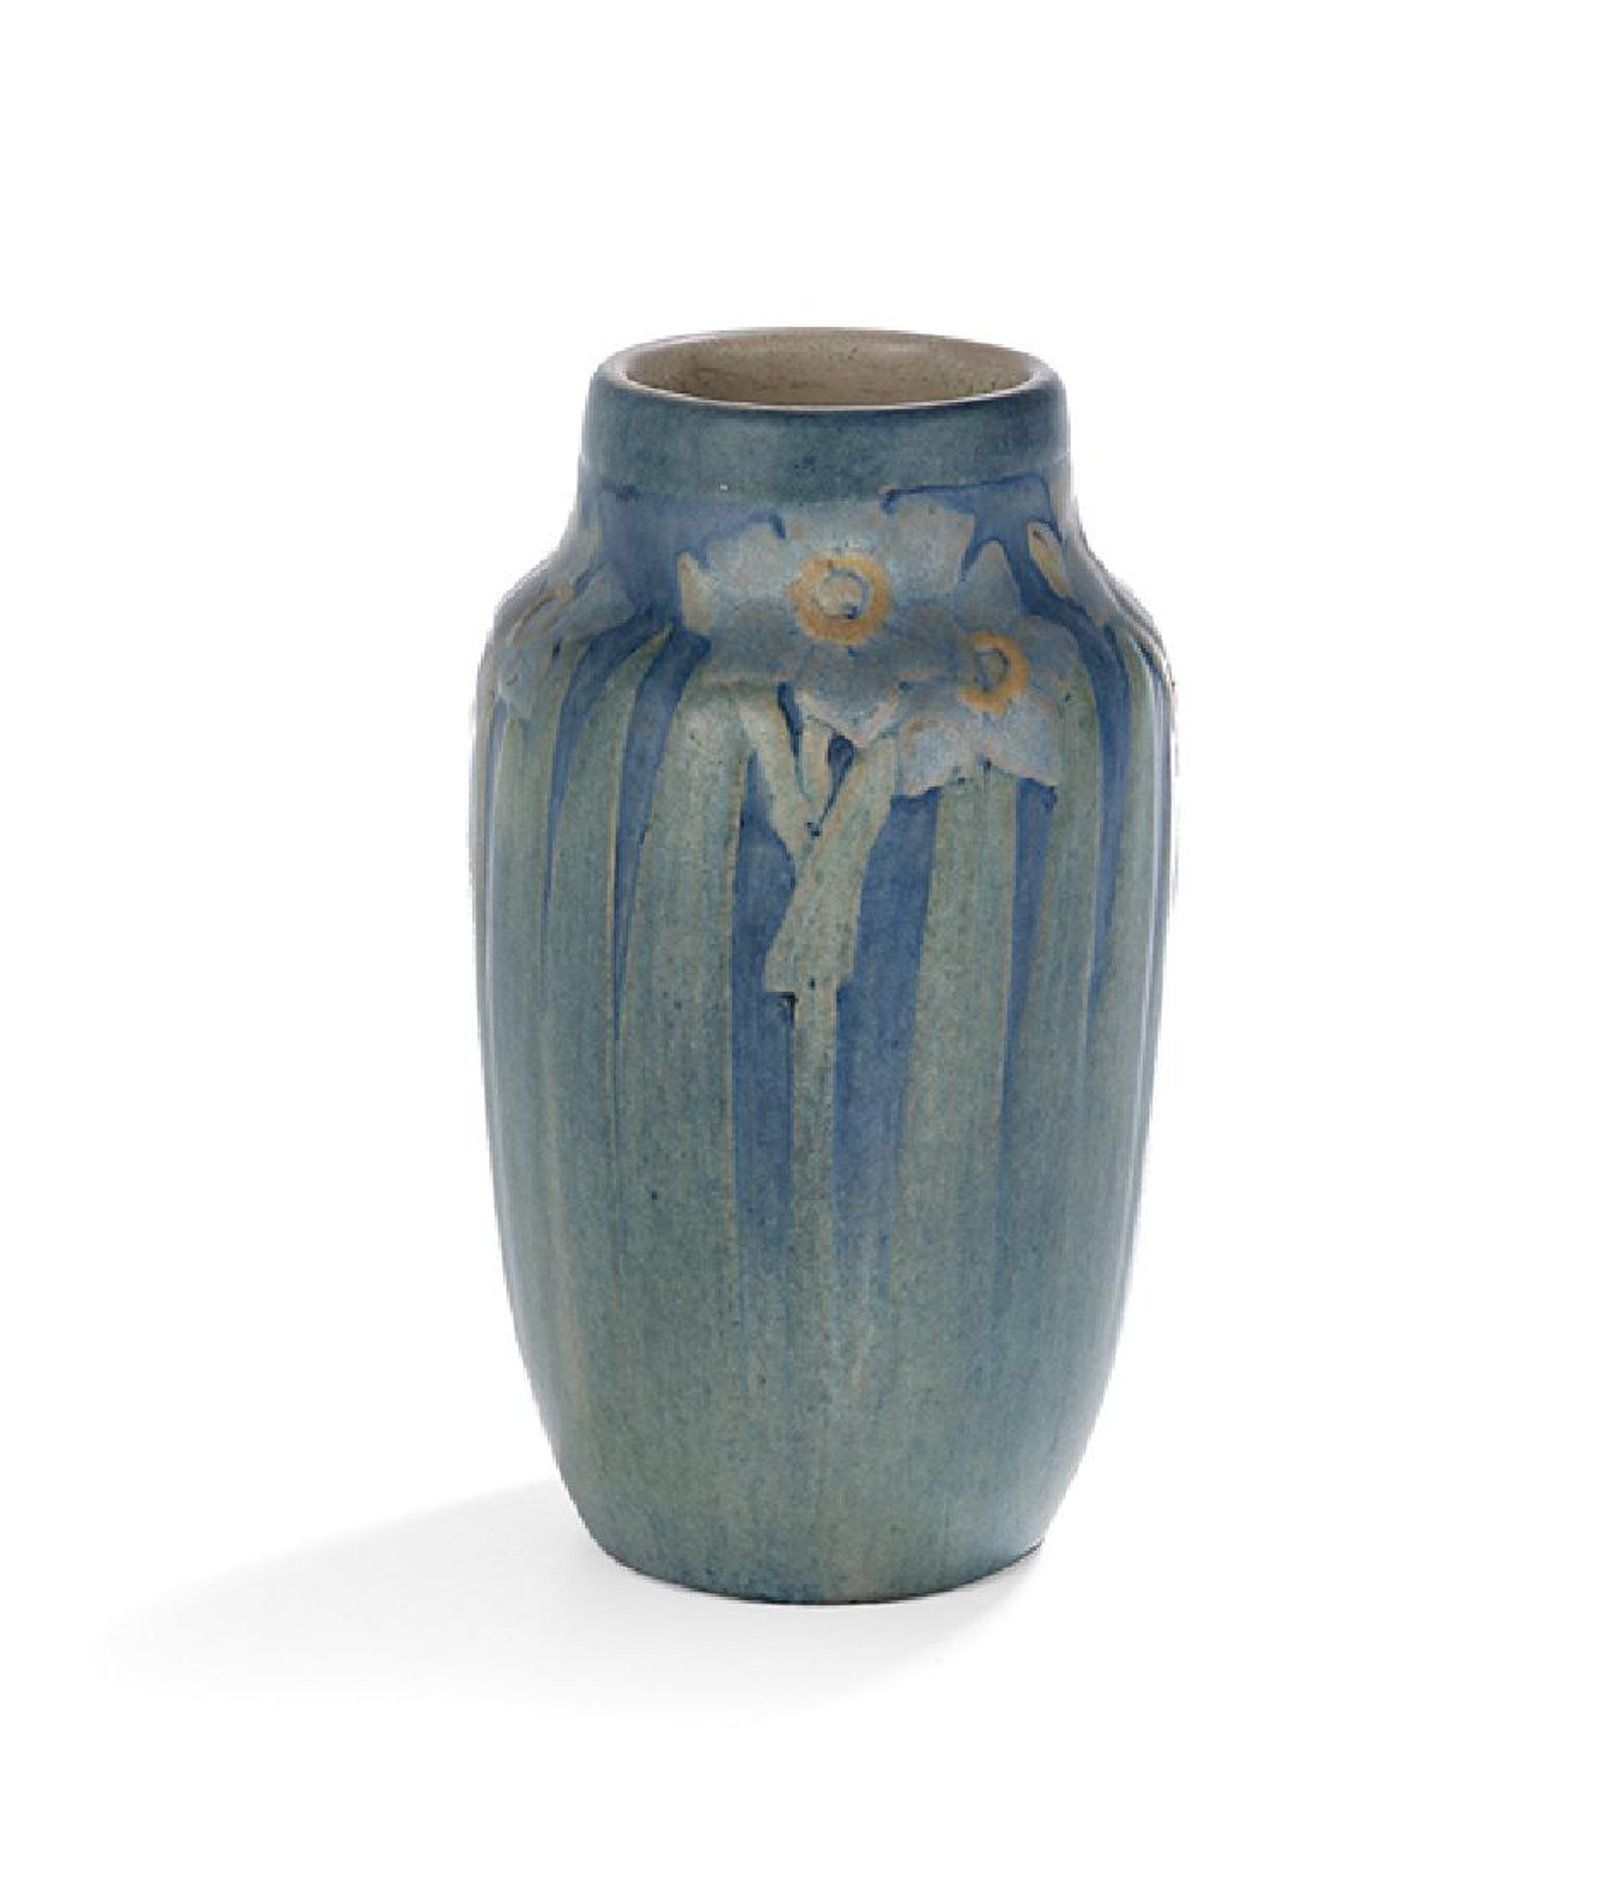 Rare Newcomb College Art Pottery Vase, 1914, Decorated By Alice